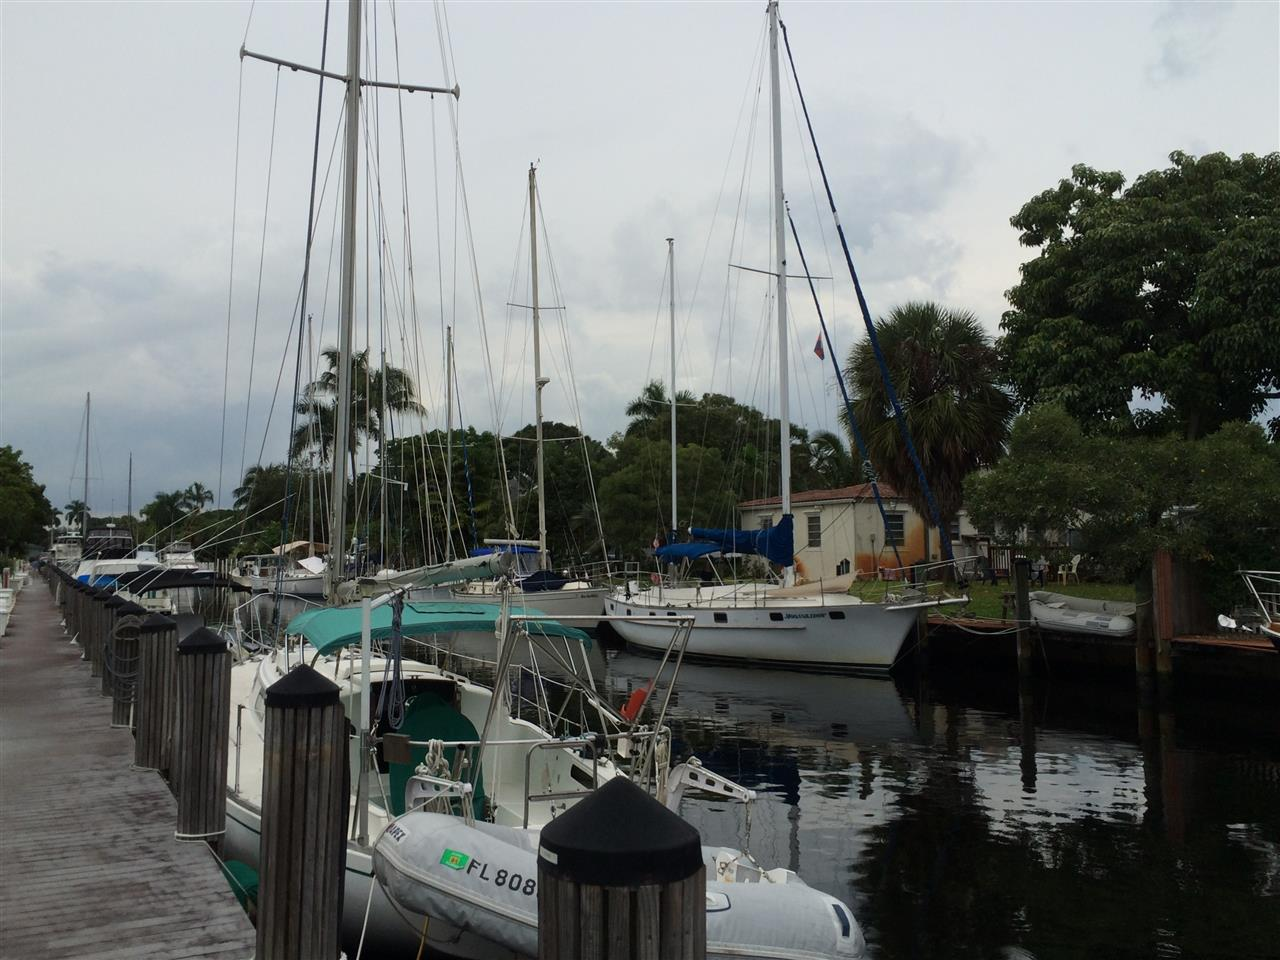 Tarpon River Fort Lauderdale off of Davie Blvd in the River Reach Community